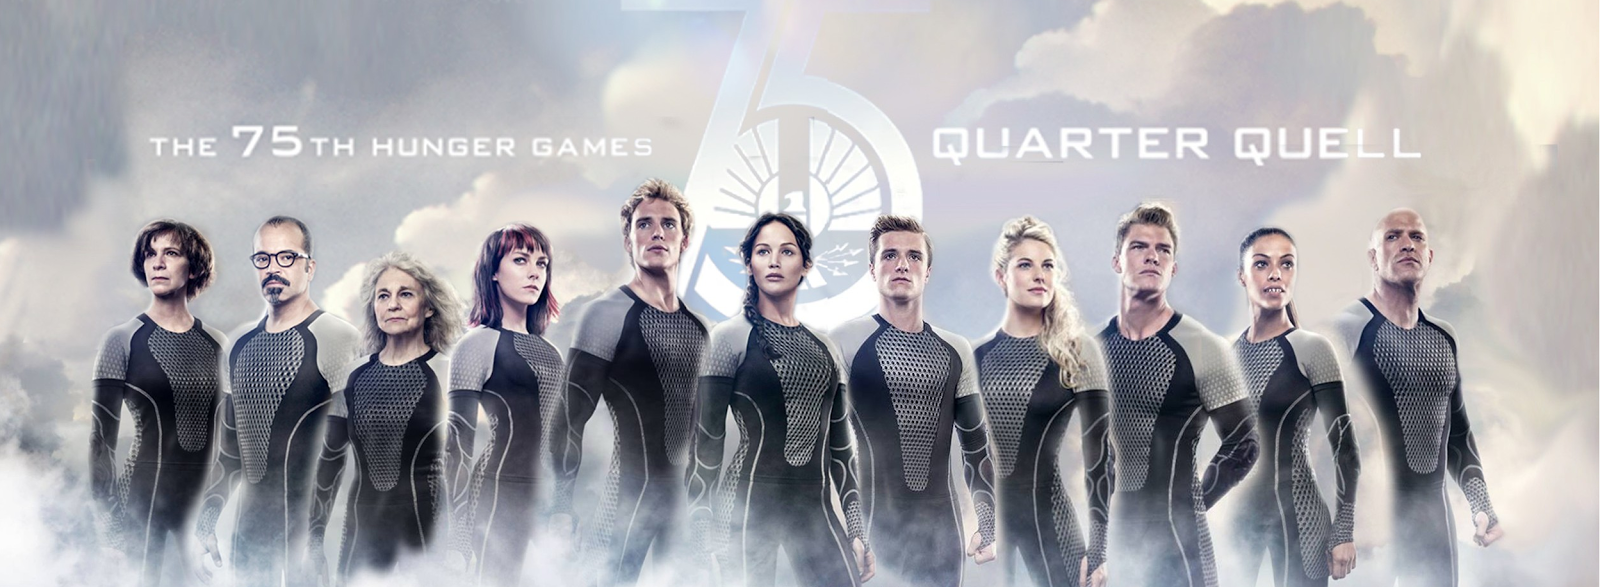 FILMRAP: THE HUNGER GAMES: CATCHING FIRE – REVIEW